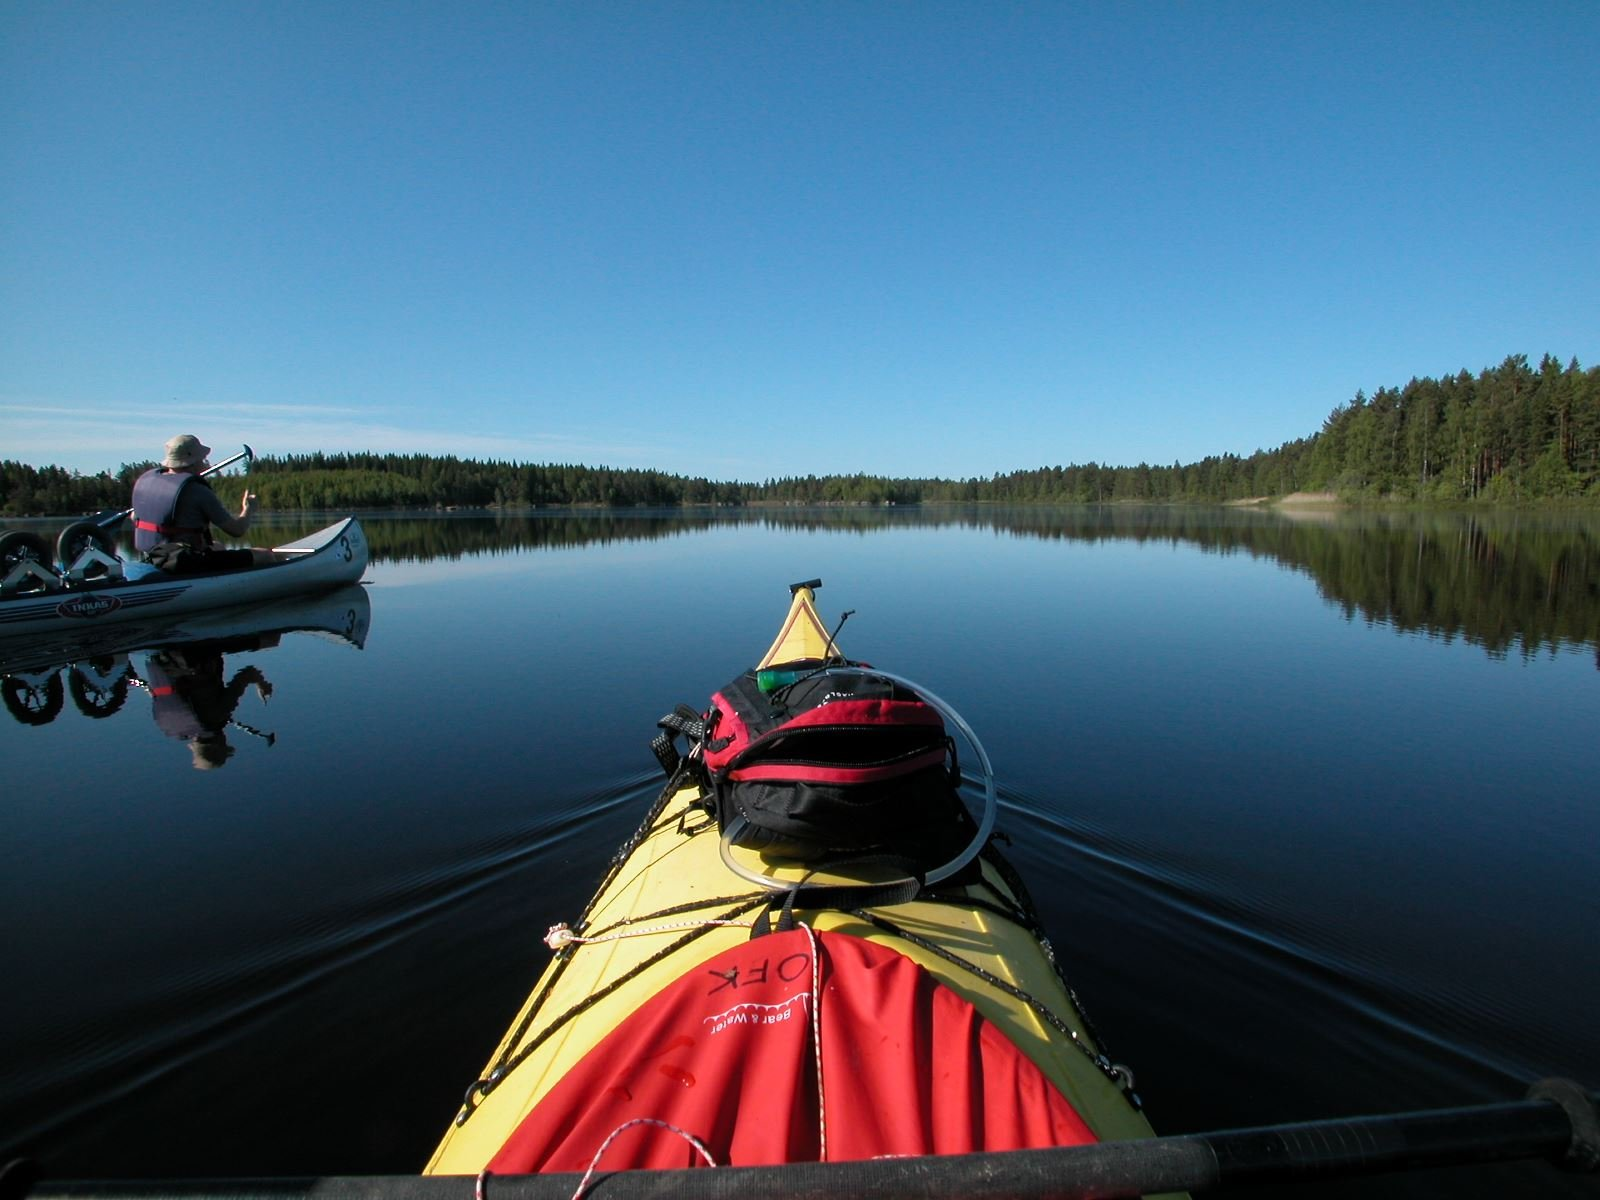 Rent a Kayak shortterm 4 hours or day (9:00-16:30)